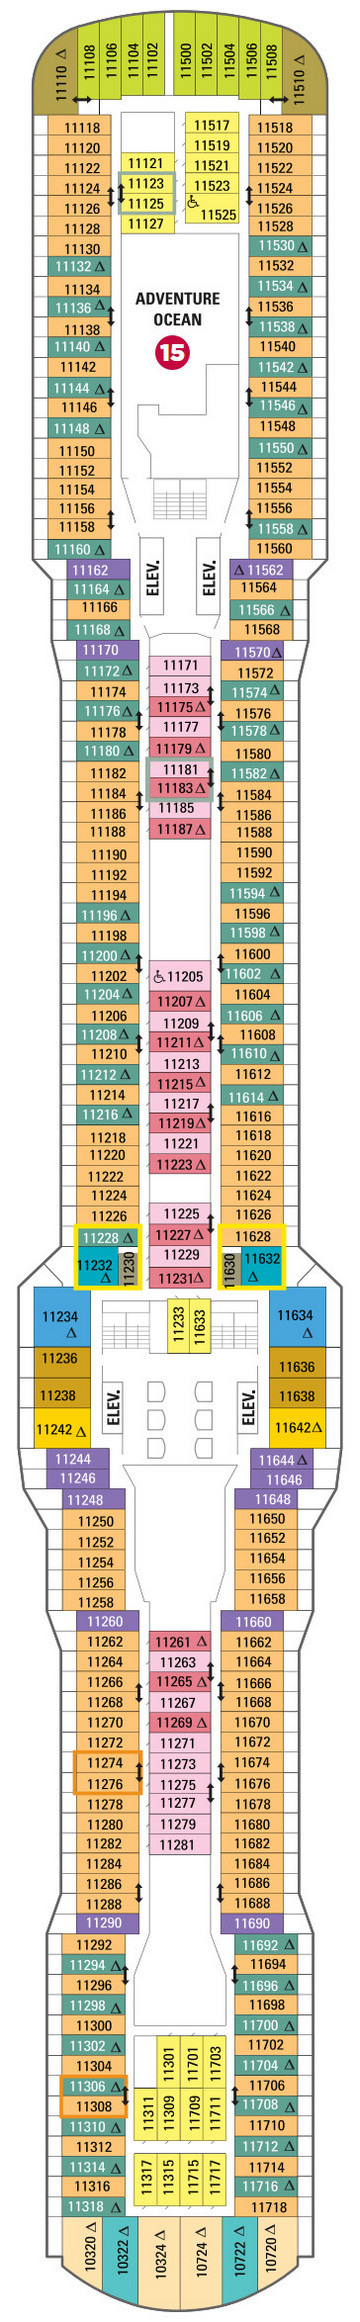 Quantum Of The Seas Deck 11 layout